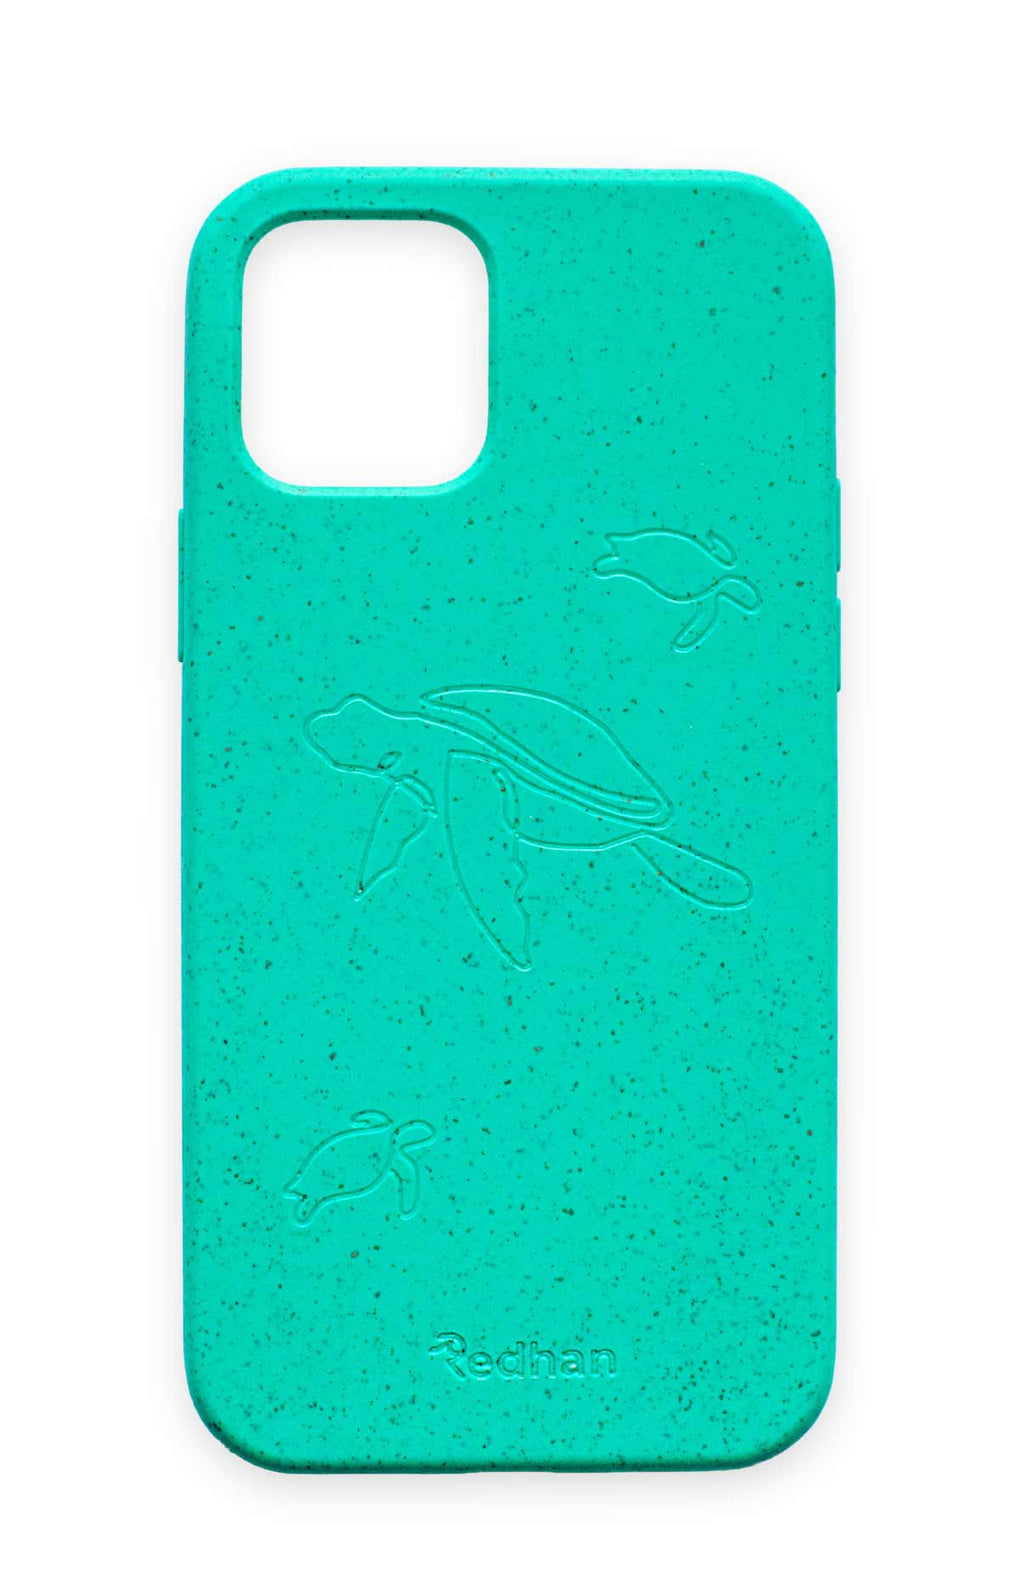 Eco Friendly iPhone 12 / 12 Pro Phone Case - Turtle in Turquoise